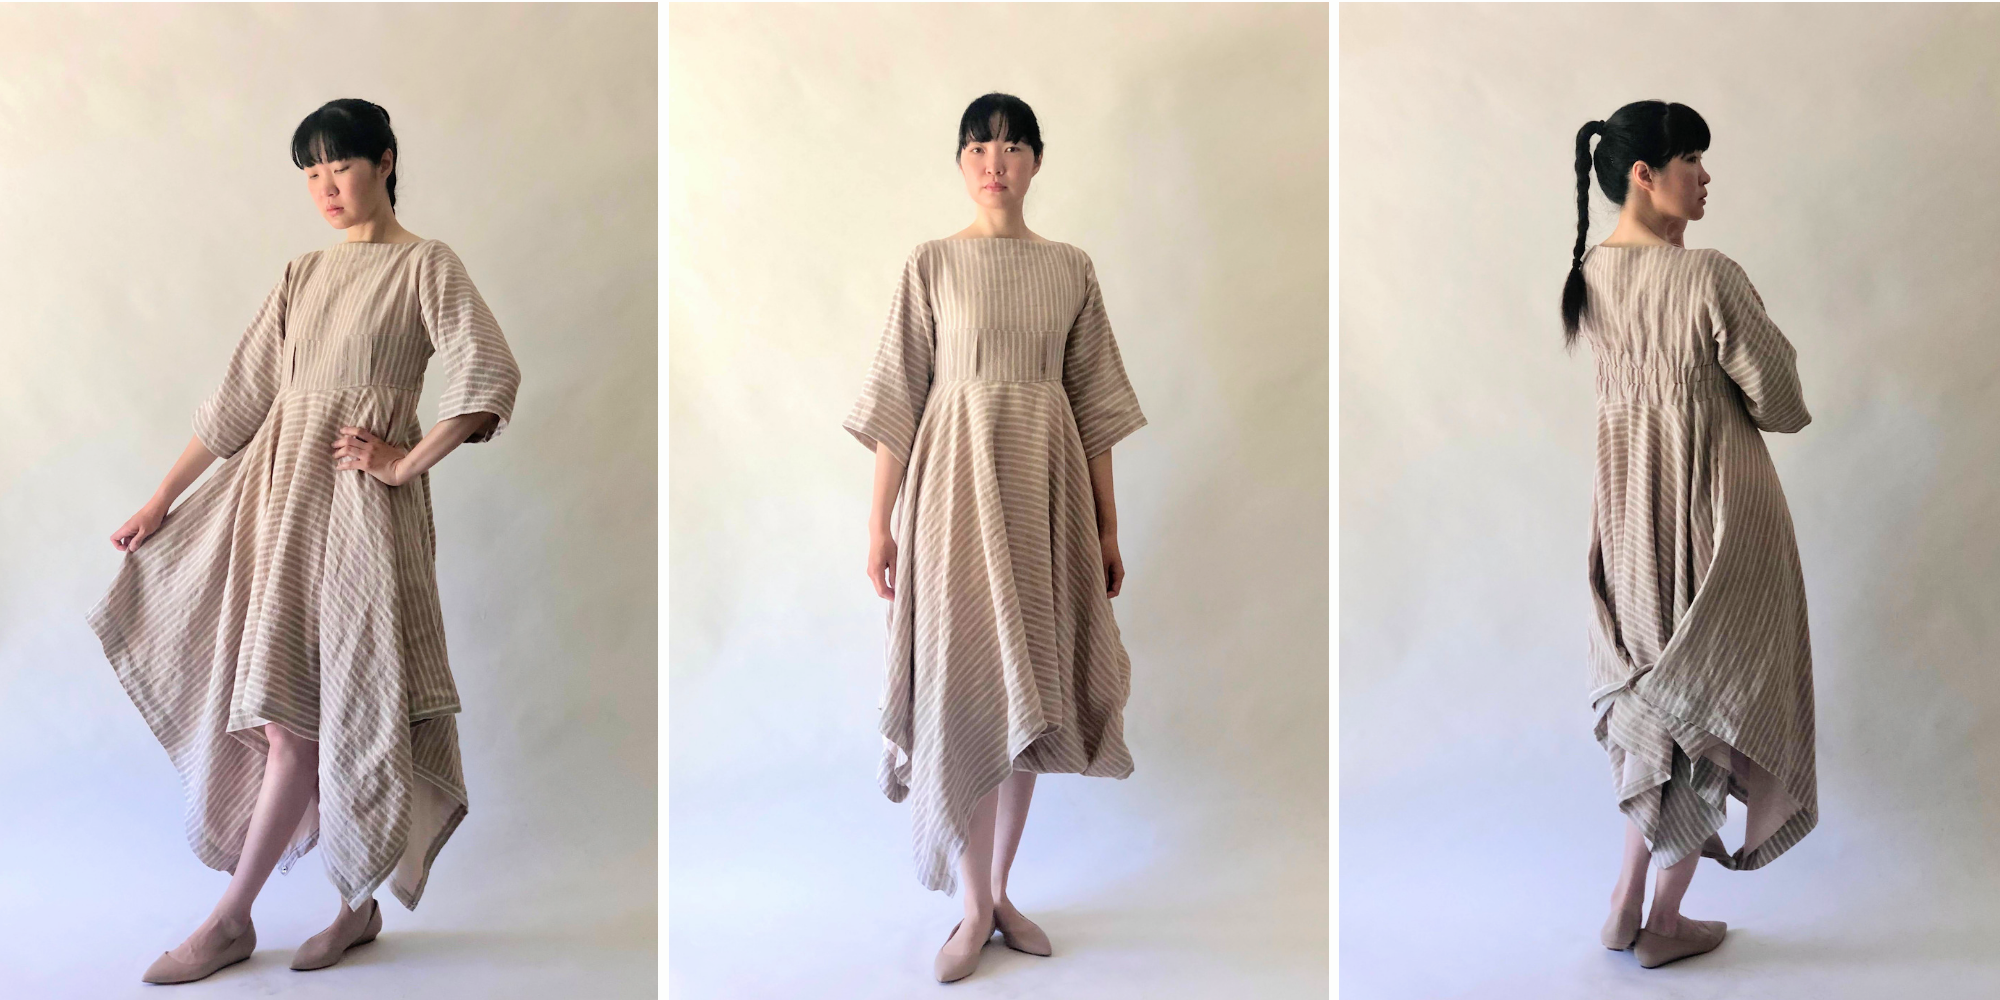 Upcycling Linen Curtains into Handkerchief Dress